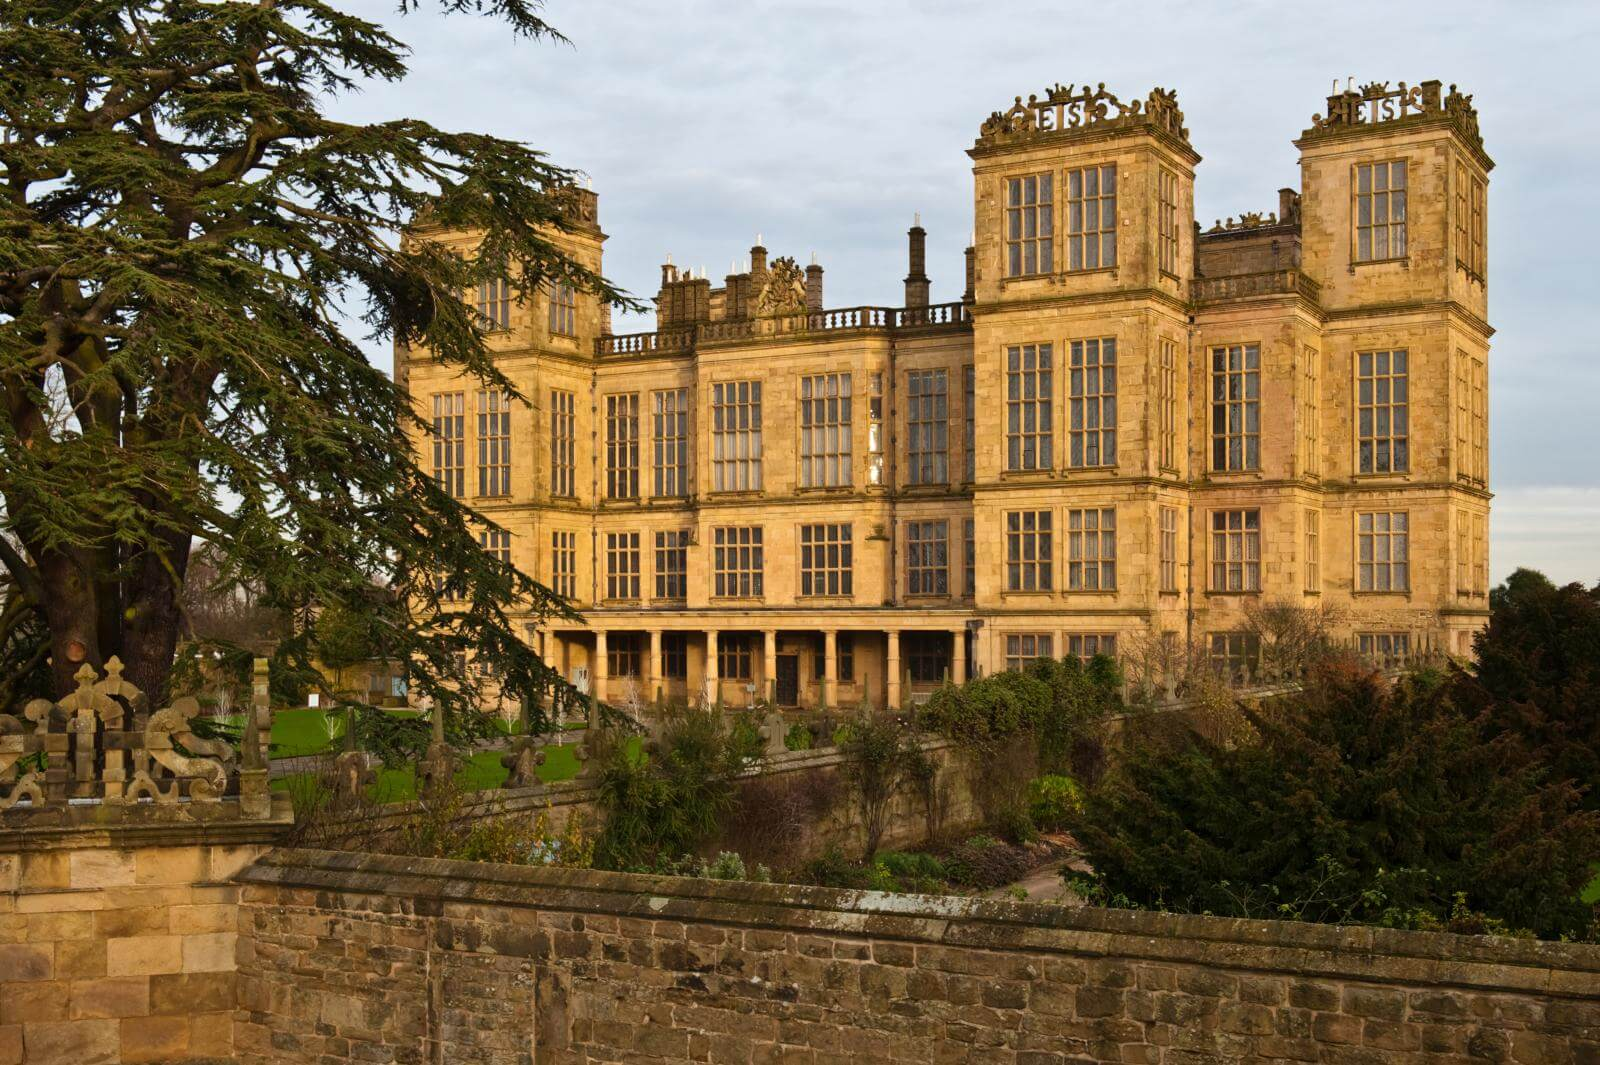 Exterior of Hardwick Hall